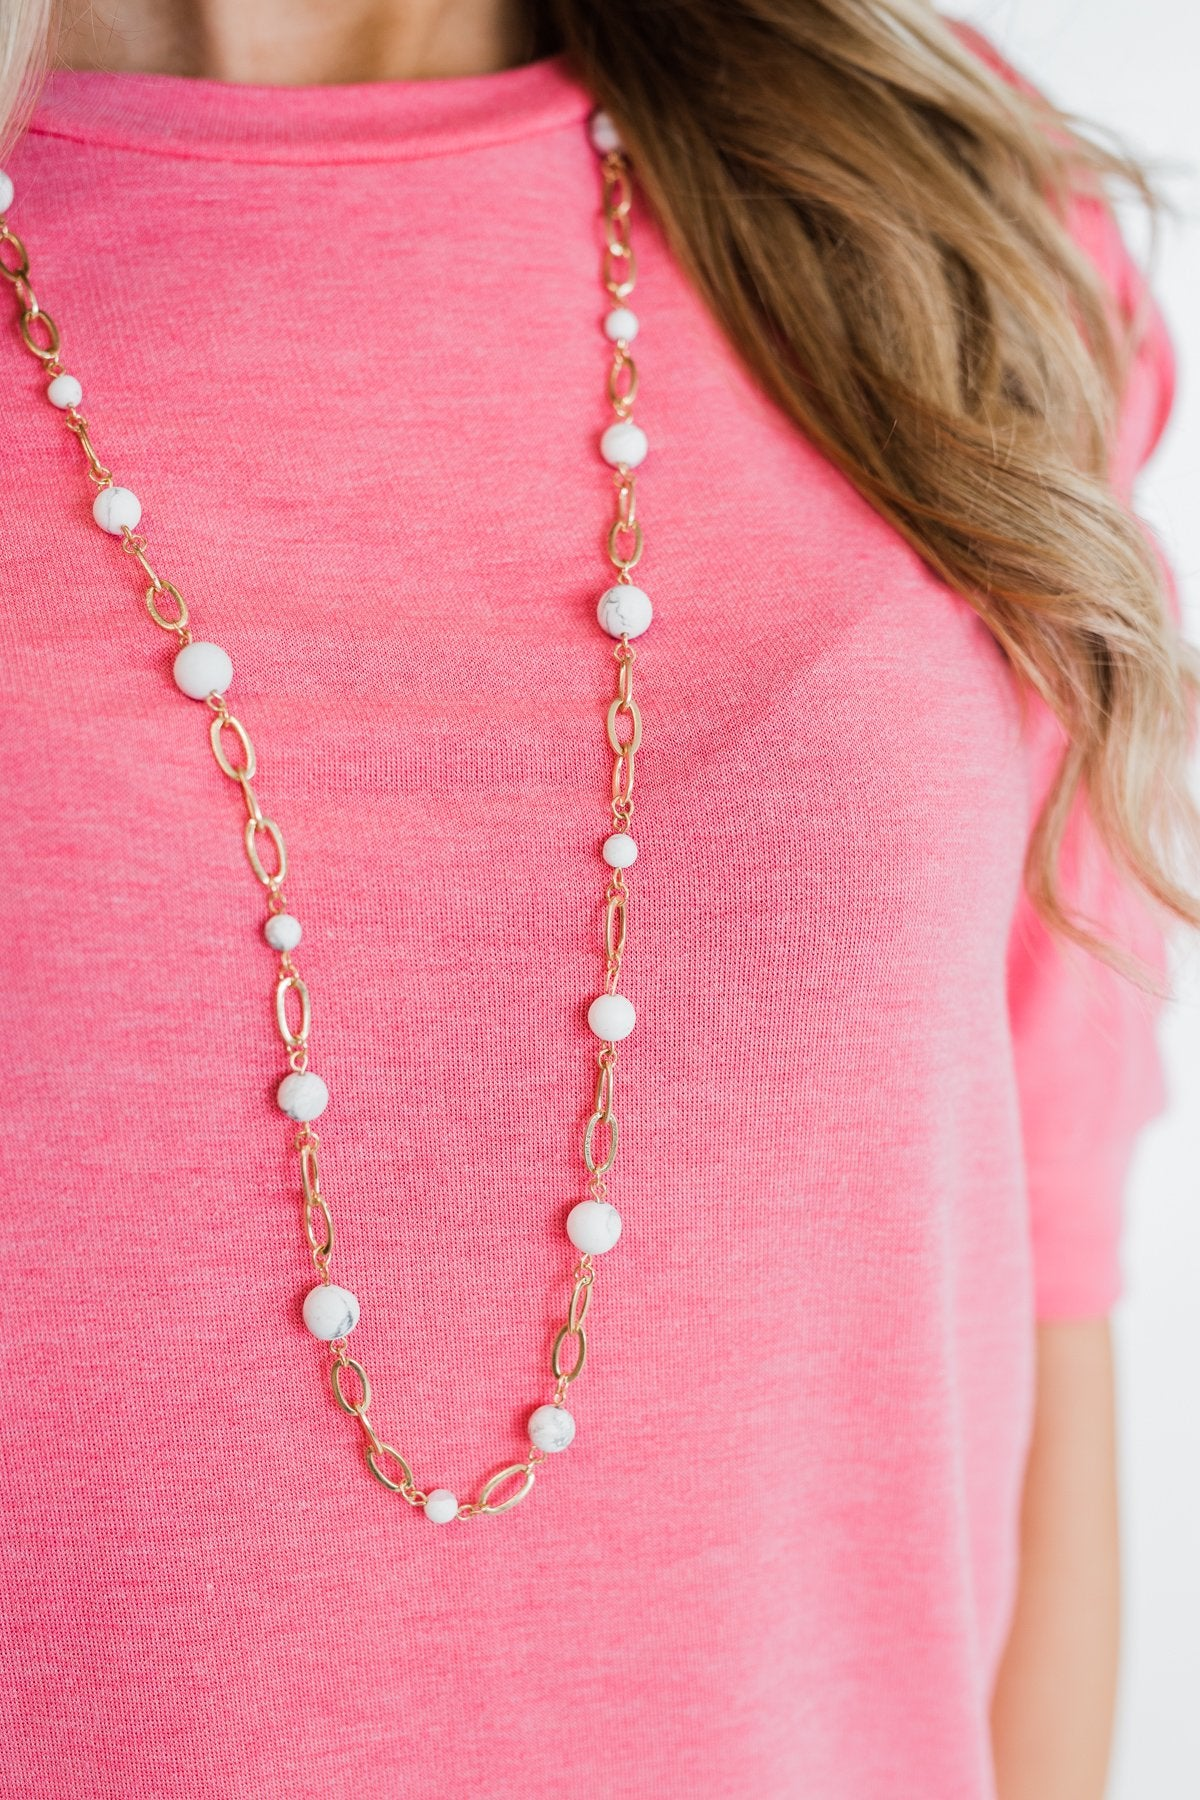 Marble Beaded Chain Necklace- Gold